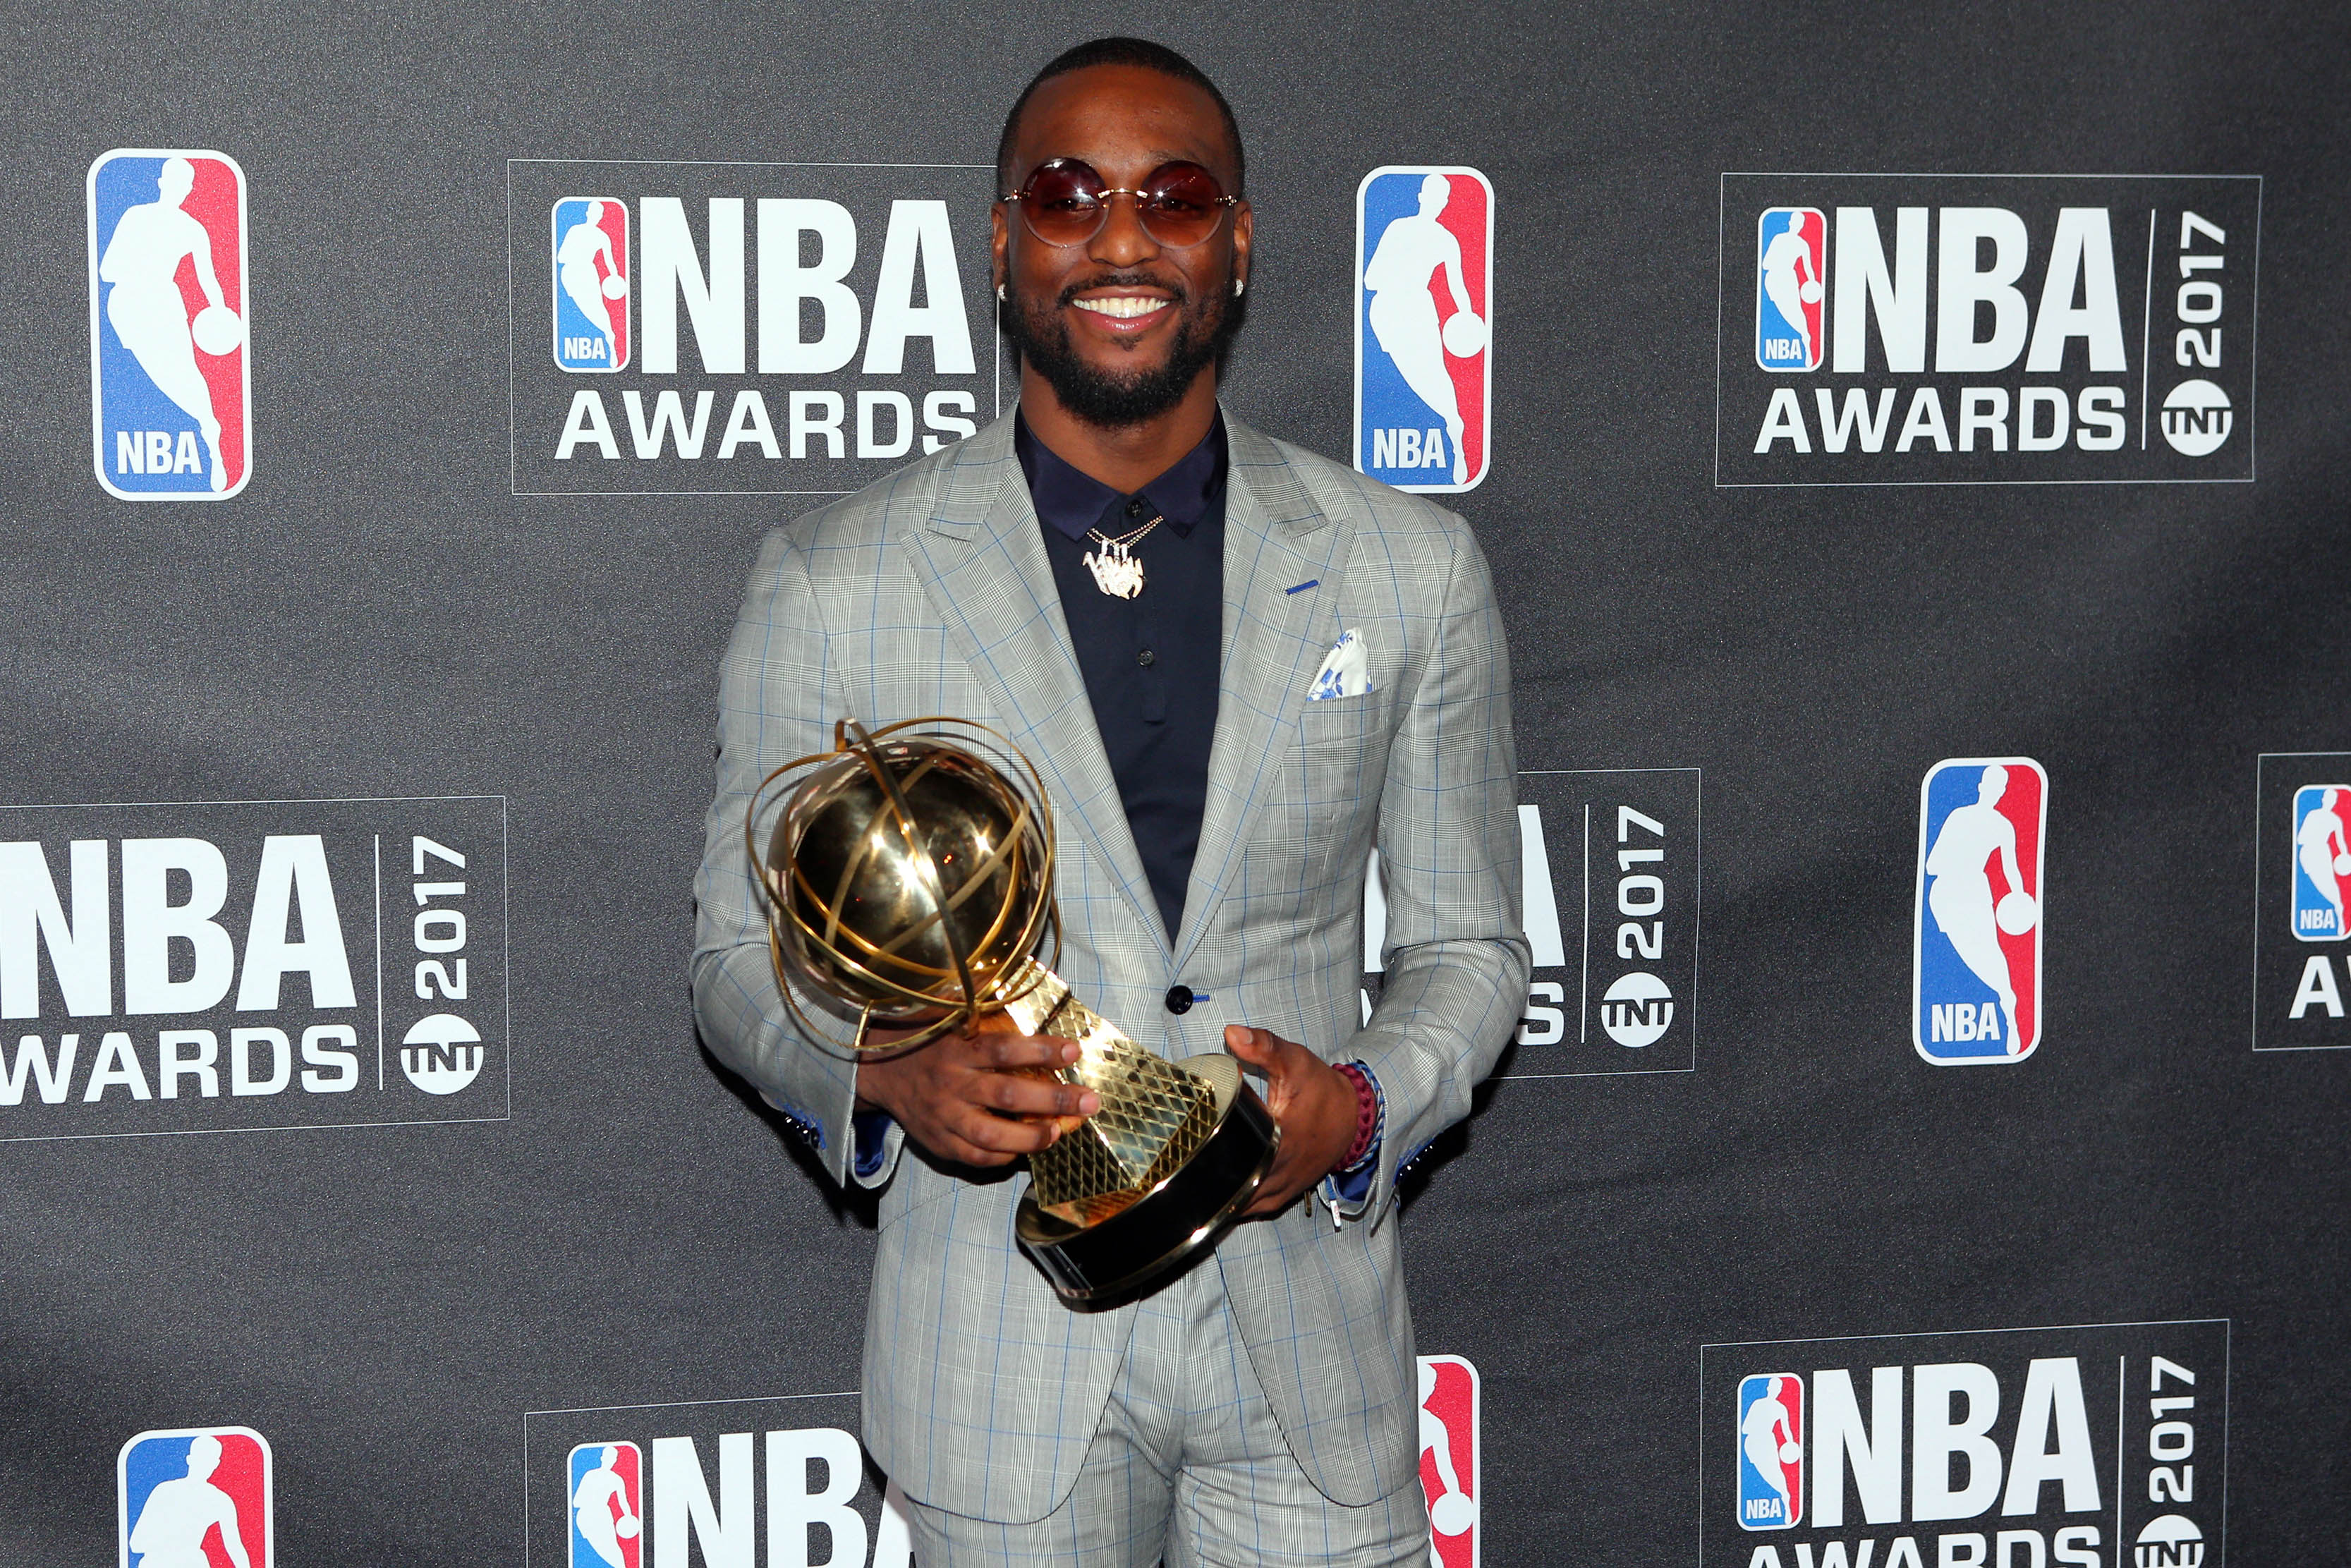 nba awards - photo #38